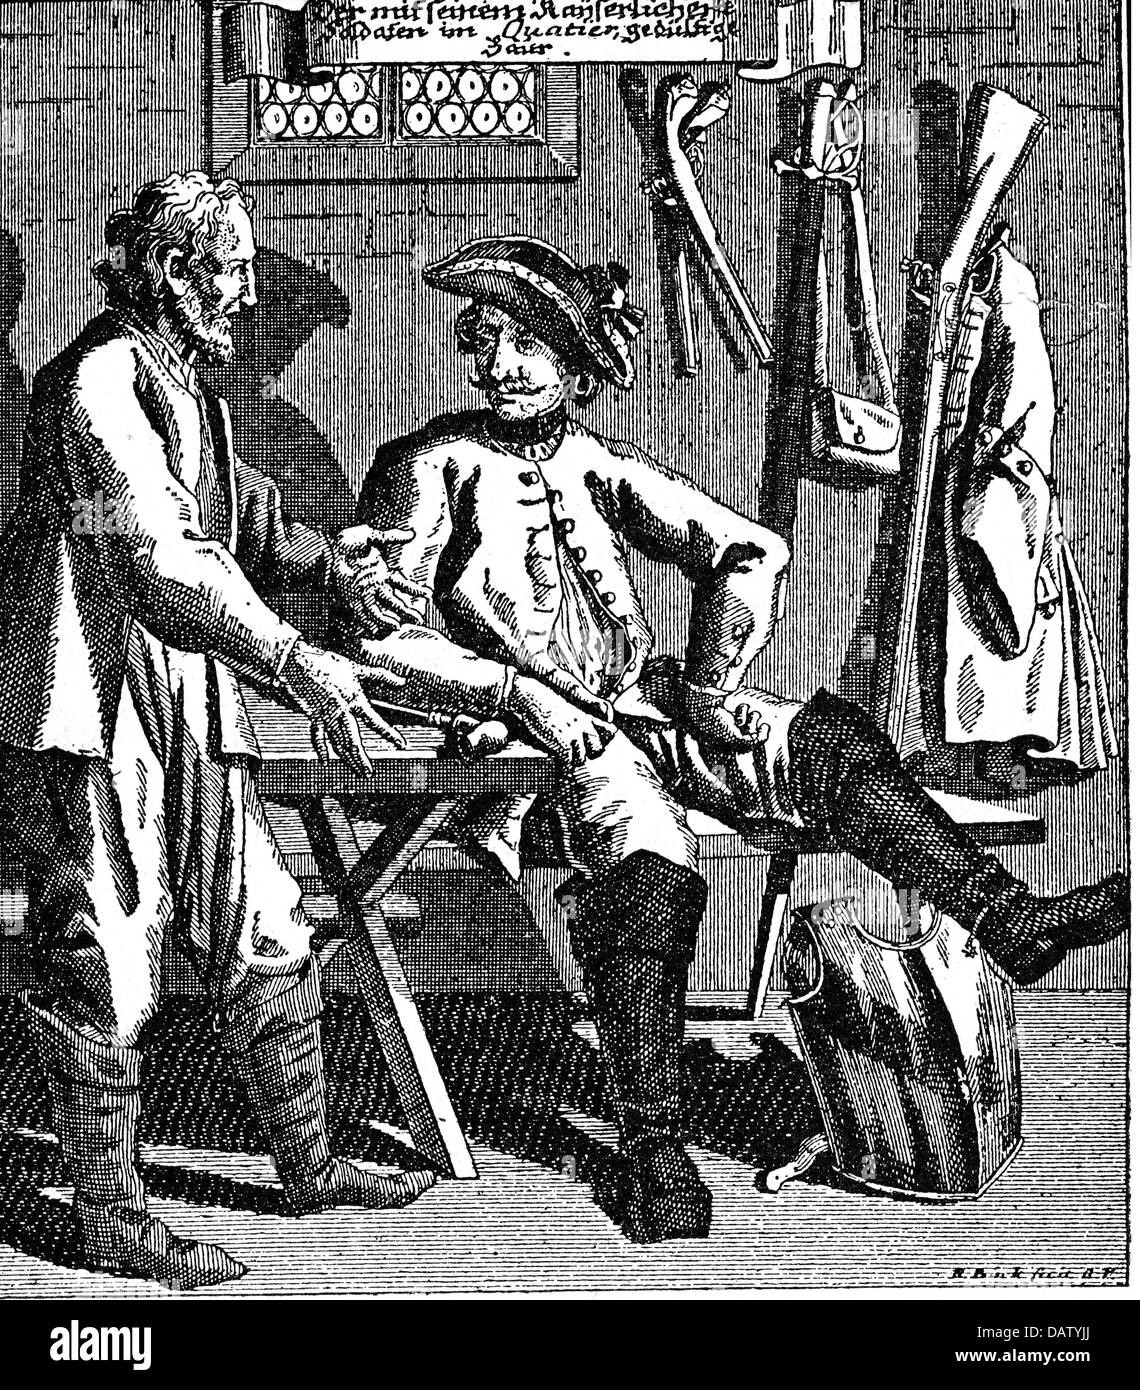 military, Austria, military life, soldier in his billet, copper engraving, 18th century, farmer, farmers, billeting, - Stock Image